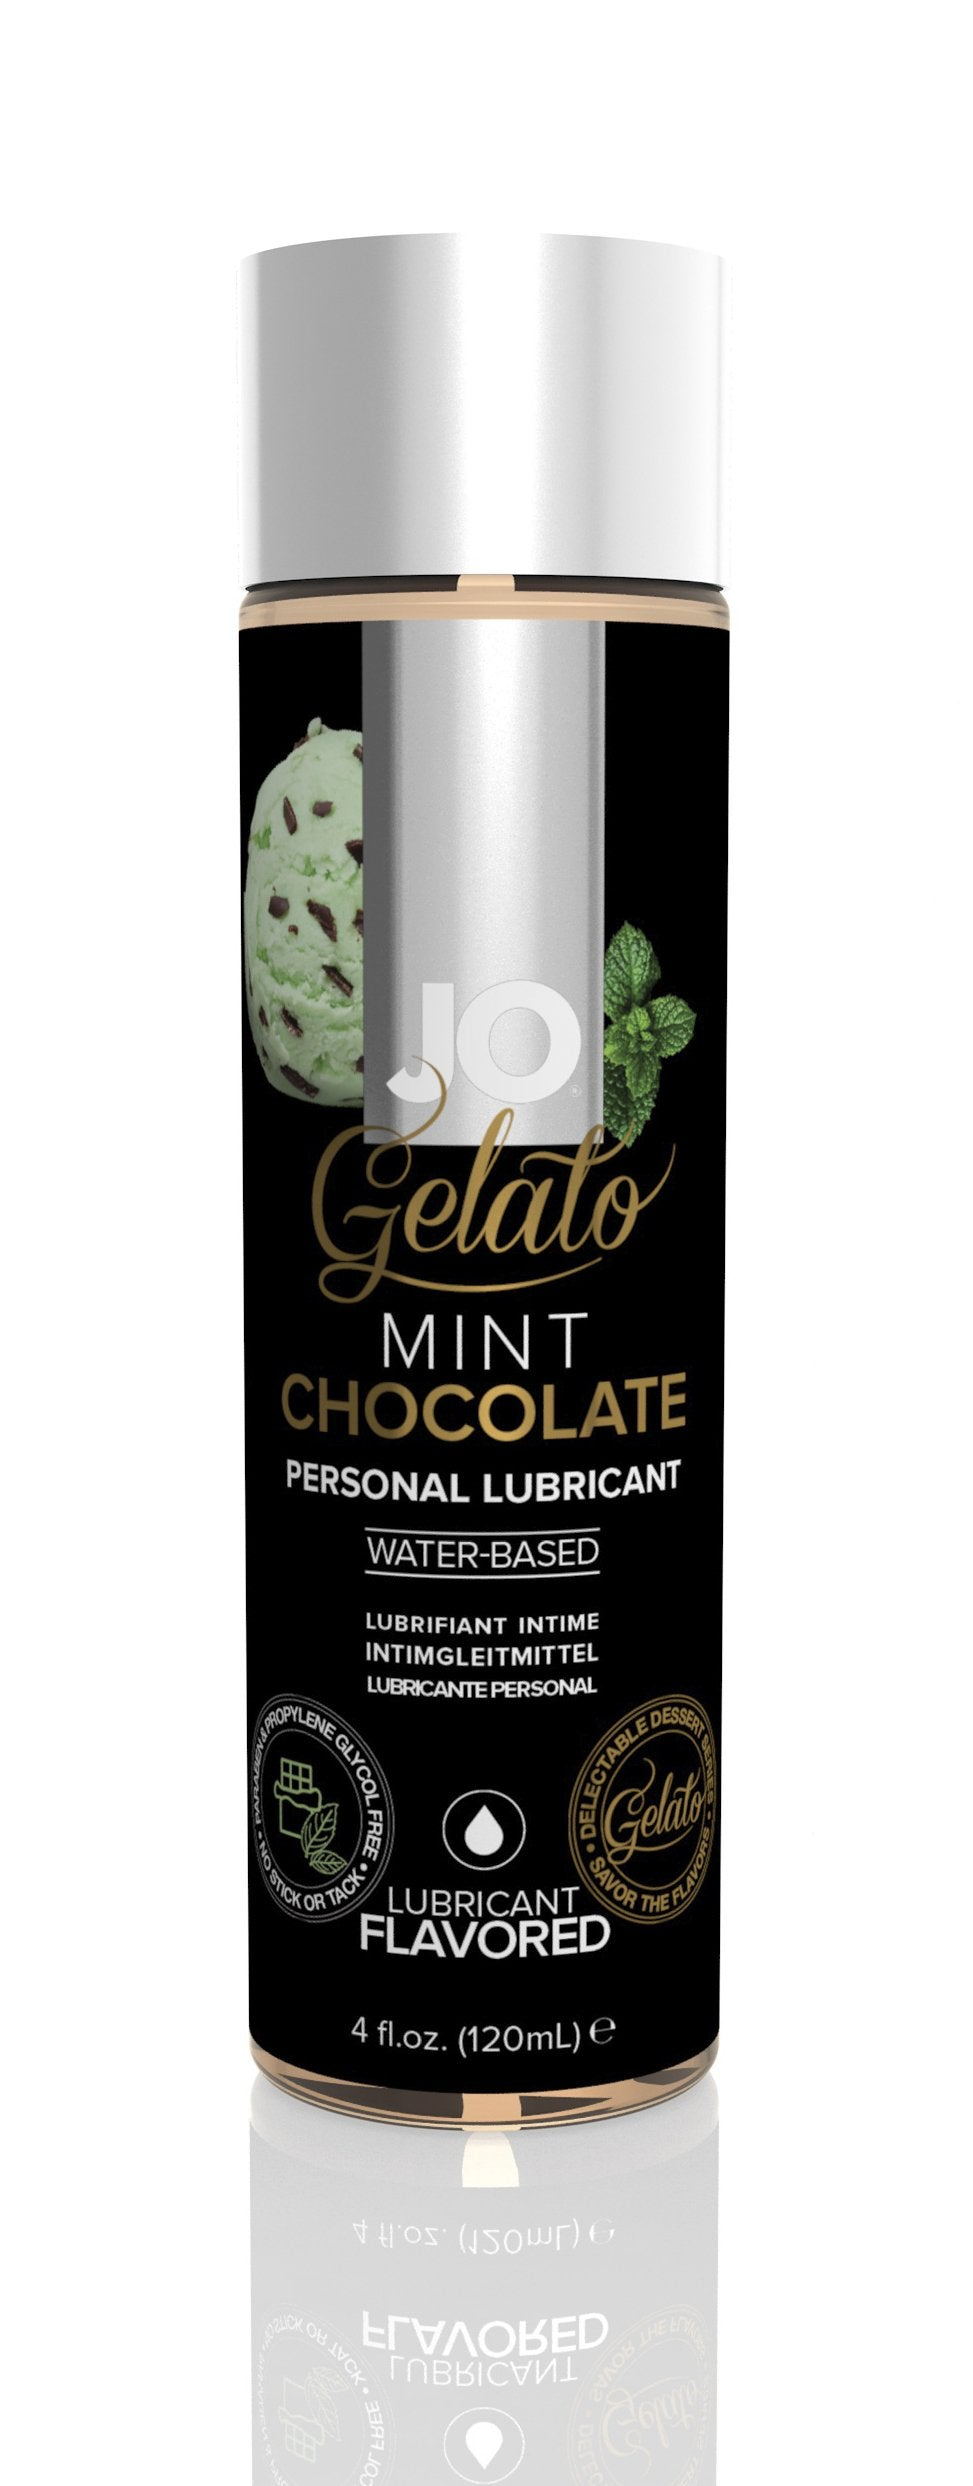 JO Gelato - Mint Chocolate 4 Oz / 120 ml